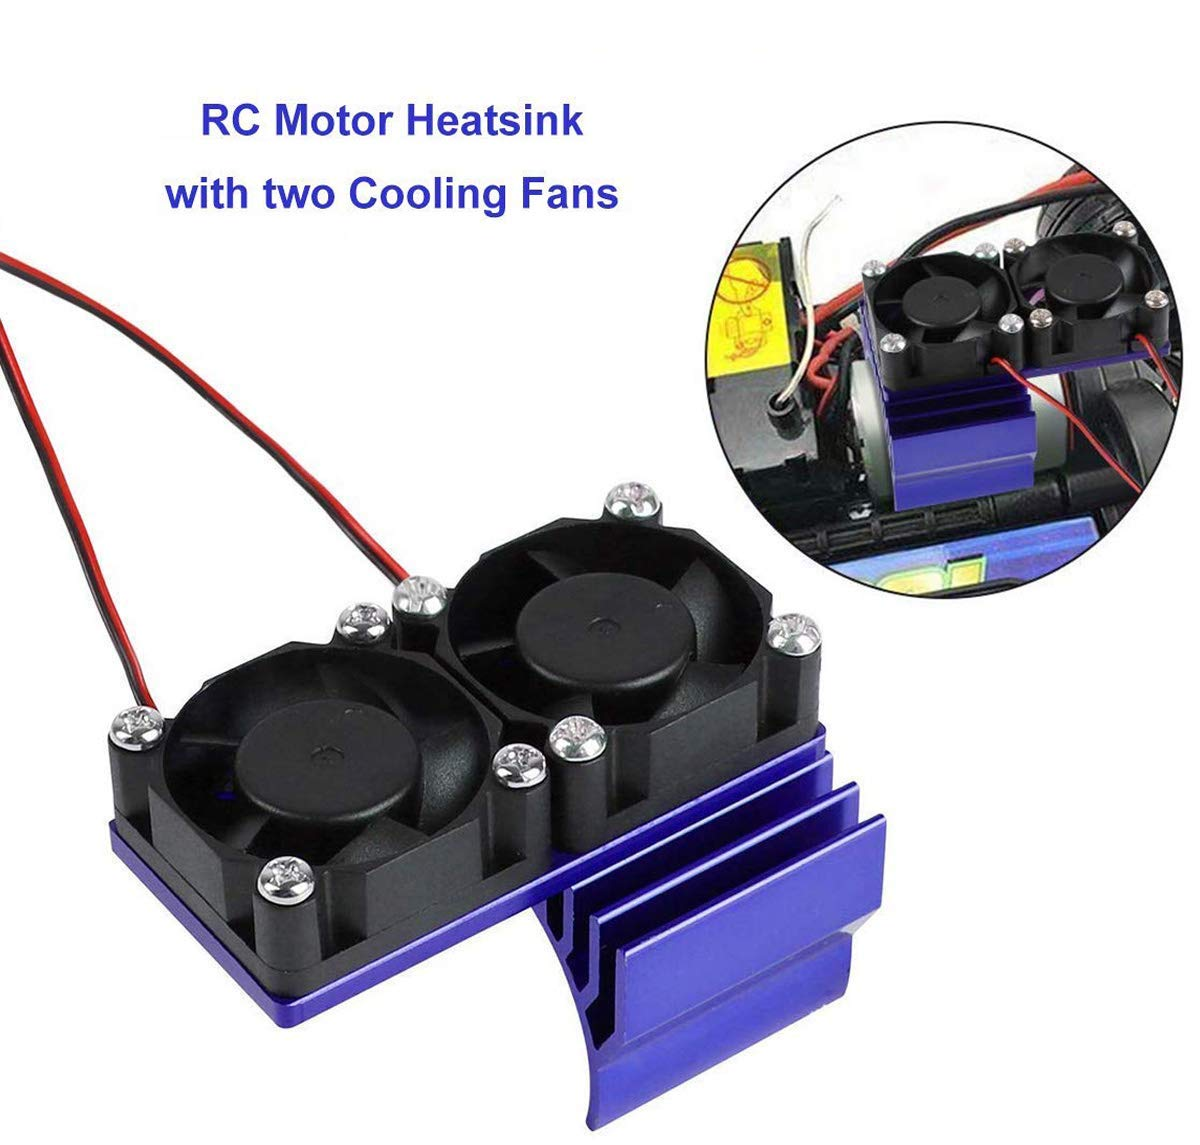 Innovateking RC Motor Heatsink with Double Cooling Fans 30mm 5V 0.1A Aluminum Heat Sink for 1/8 1/10 RC Car 540 550 Size Motor (Dark Blue)